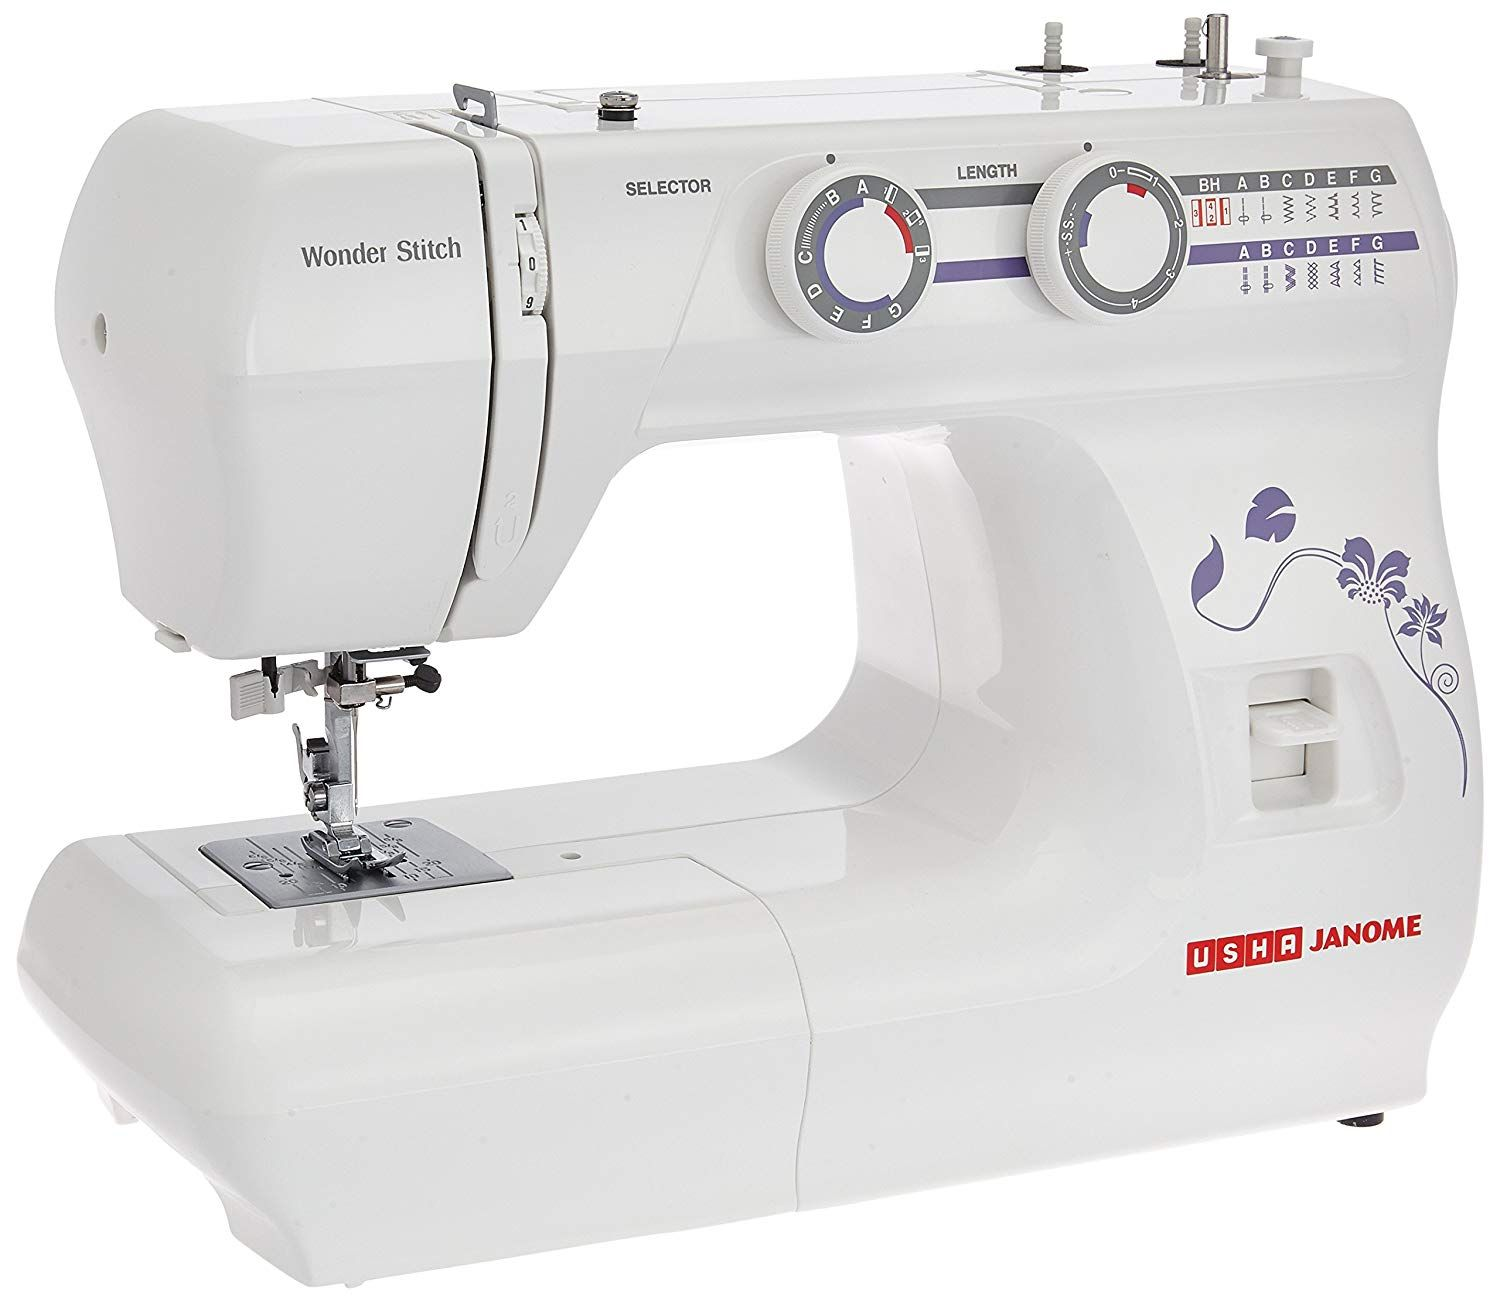 Buy Usha Janome Wonder Stitch Automatic Zig Zag Electric Sewing Machine White Online At Low Prices In India Amazon In Sewing Machine Parts Sewing Machine Accessories Sewing Machine Online